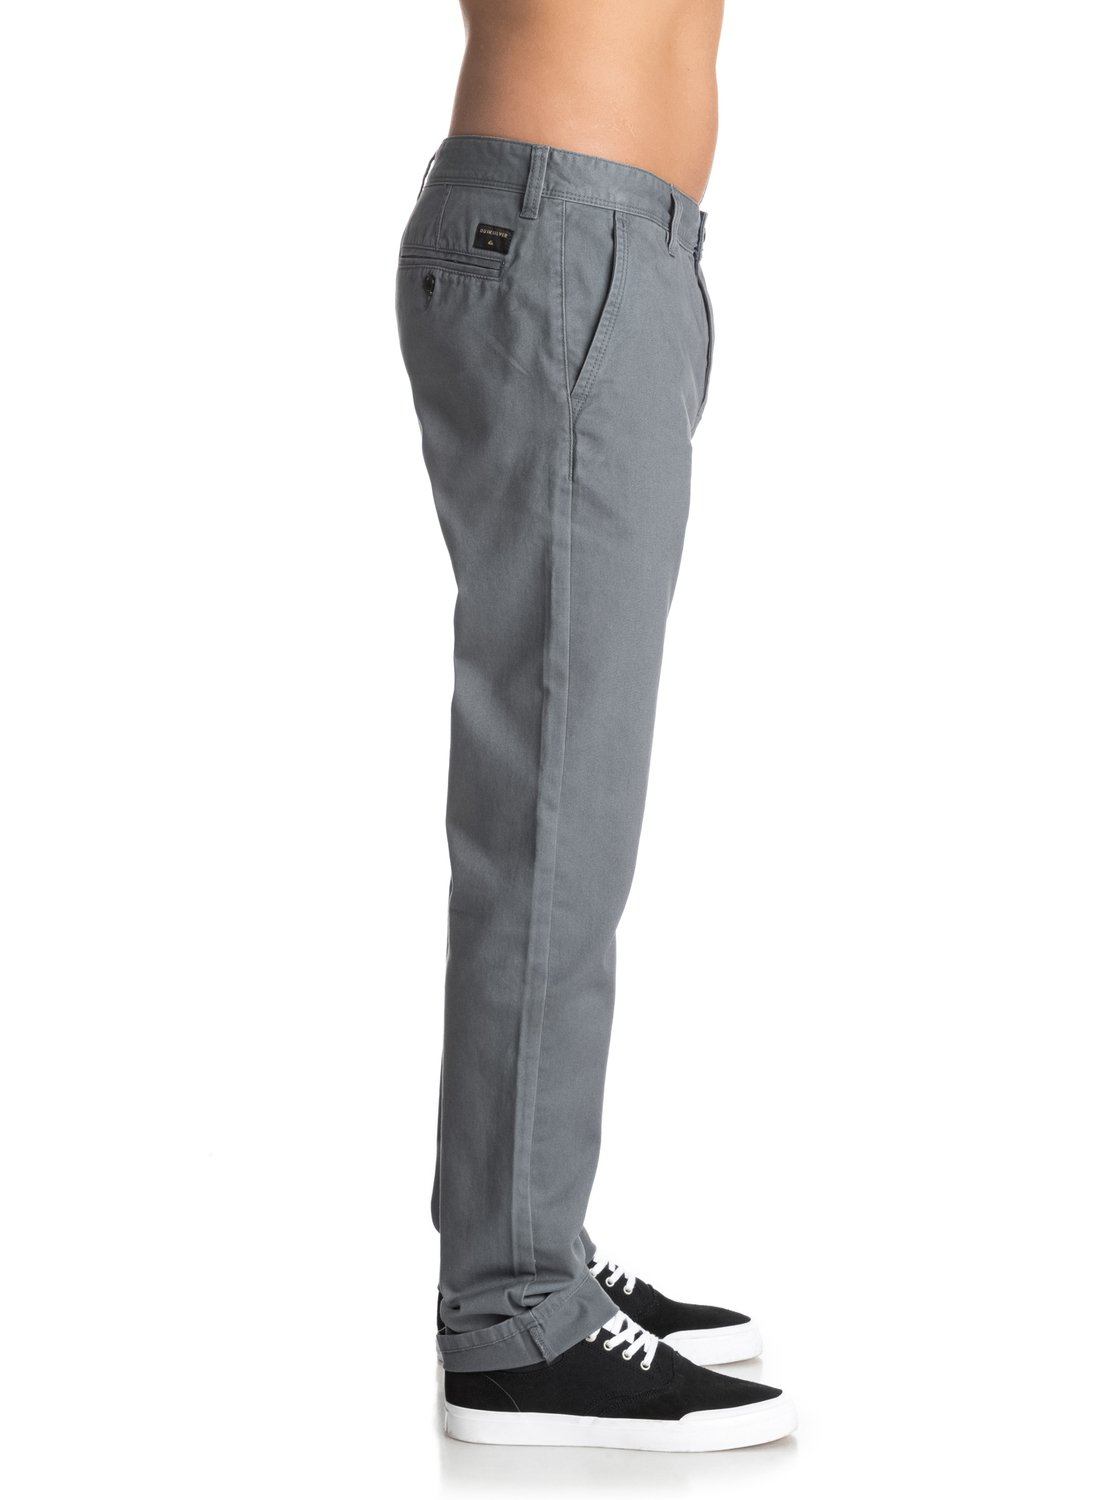 Quiksilver-Everyday-Chinos-para-Hombre-EQYNP03093